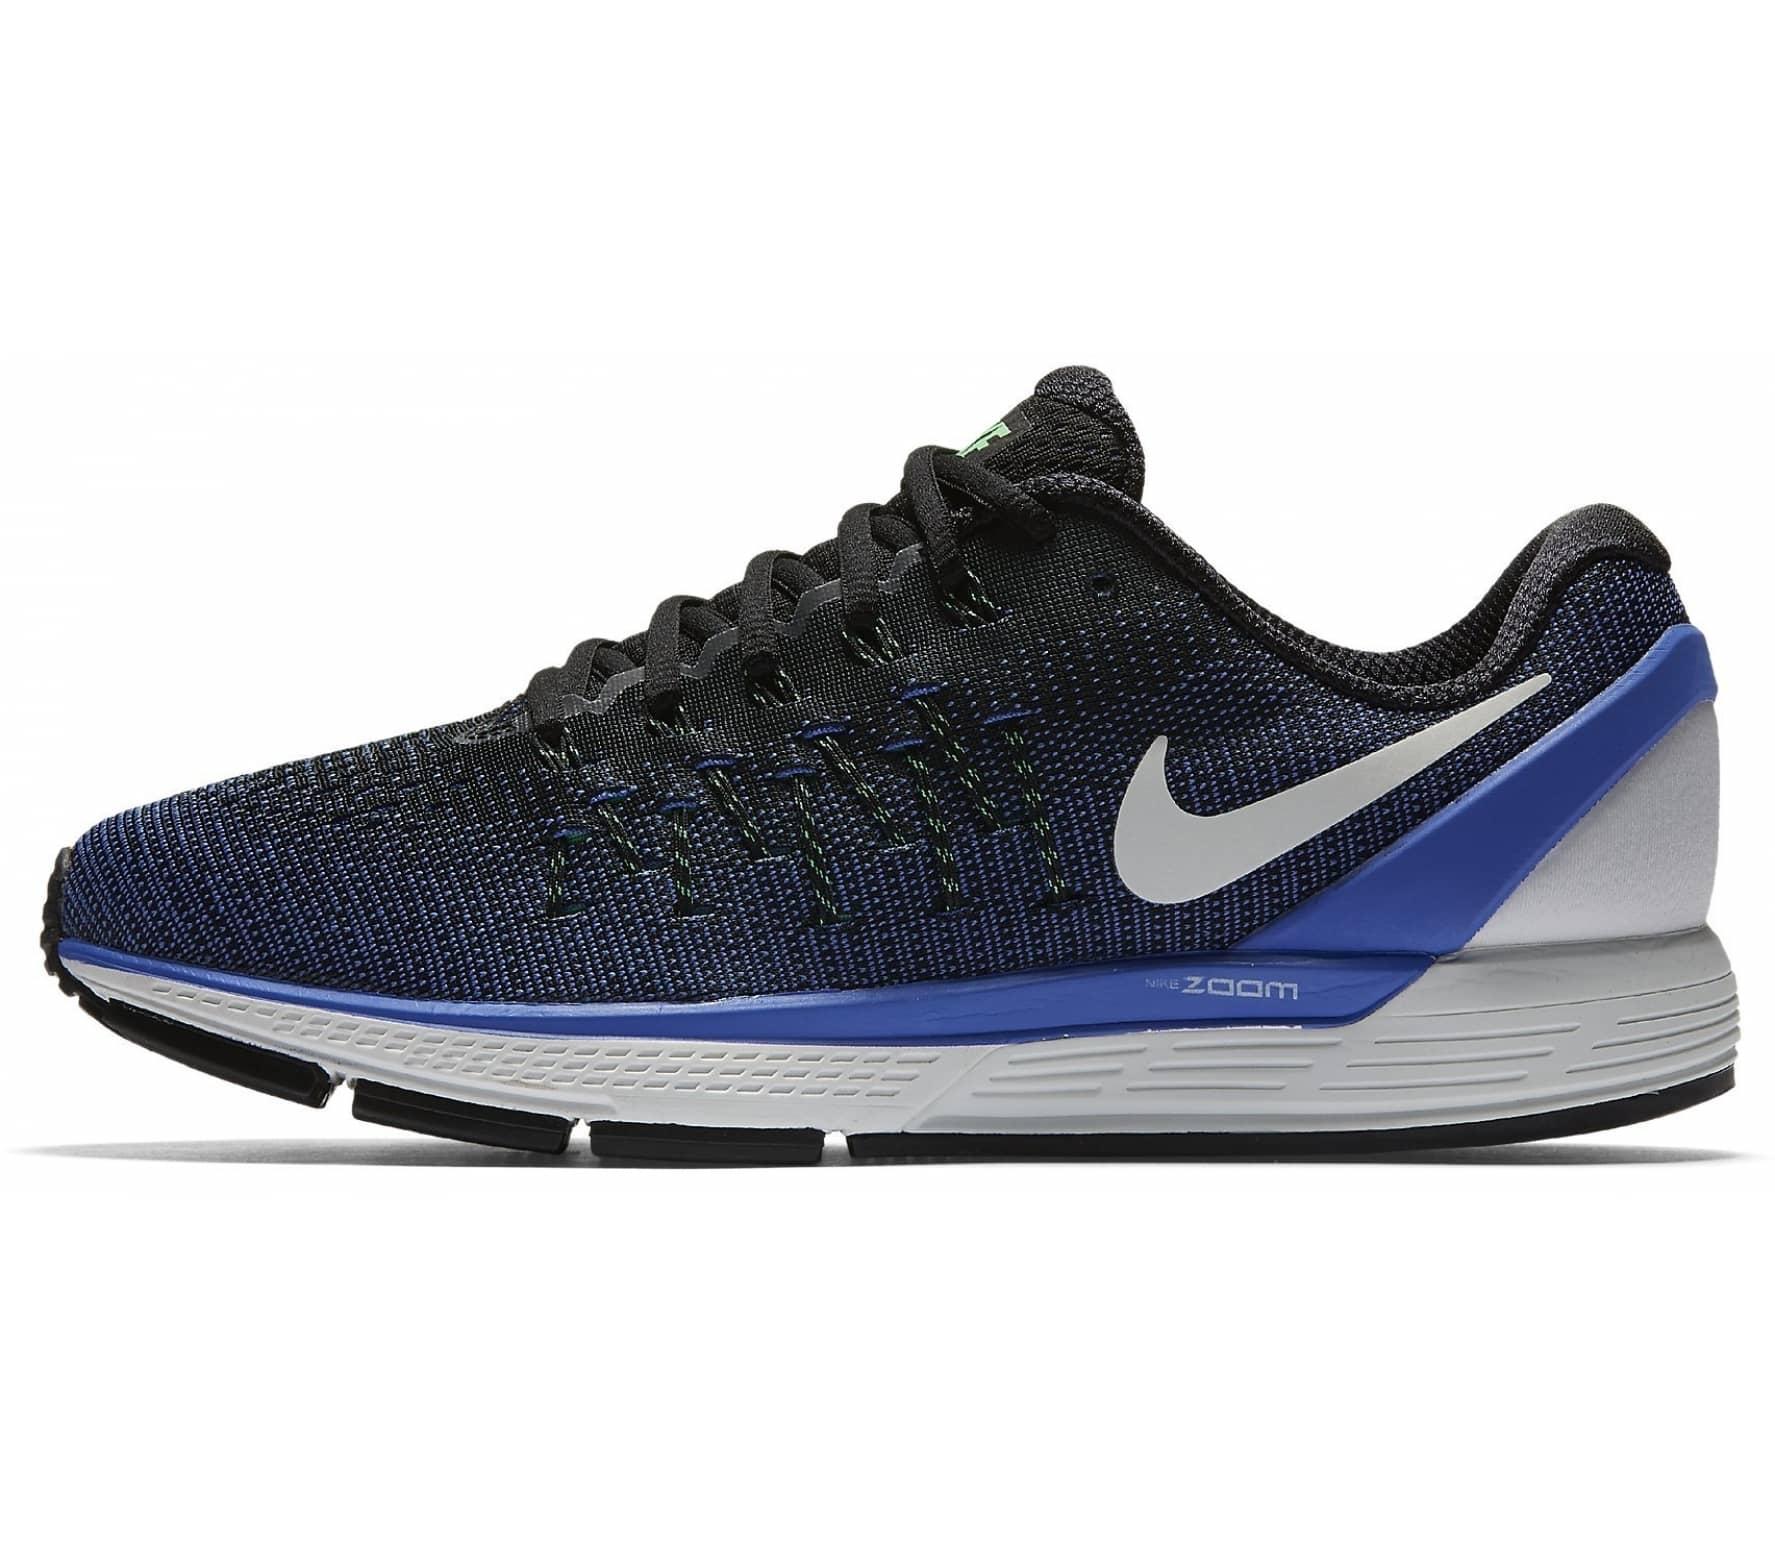 new product ee5c7 6fd5c Nike - Air Zoom Odyssey 2 men's running shoes (black/blue)